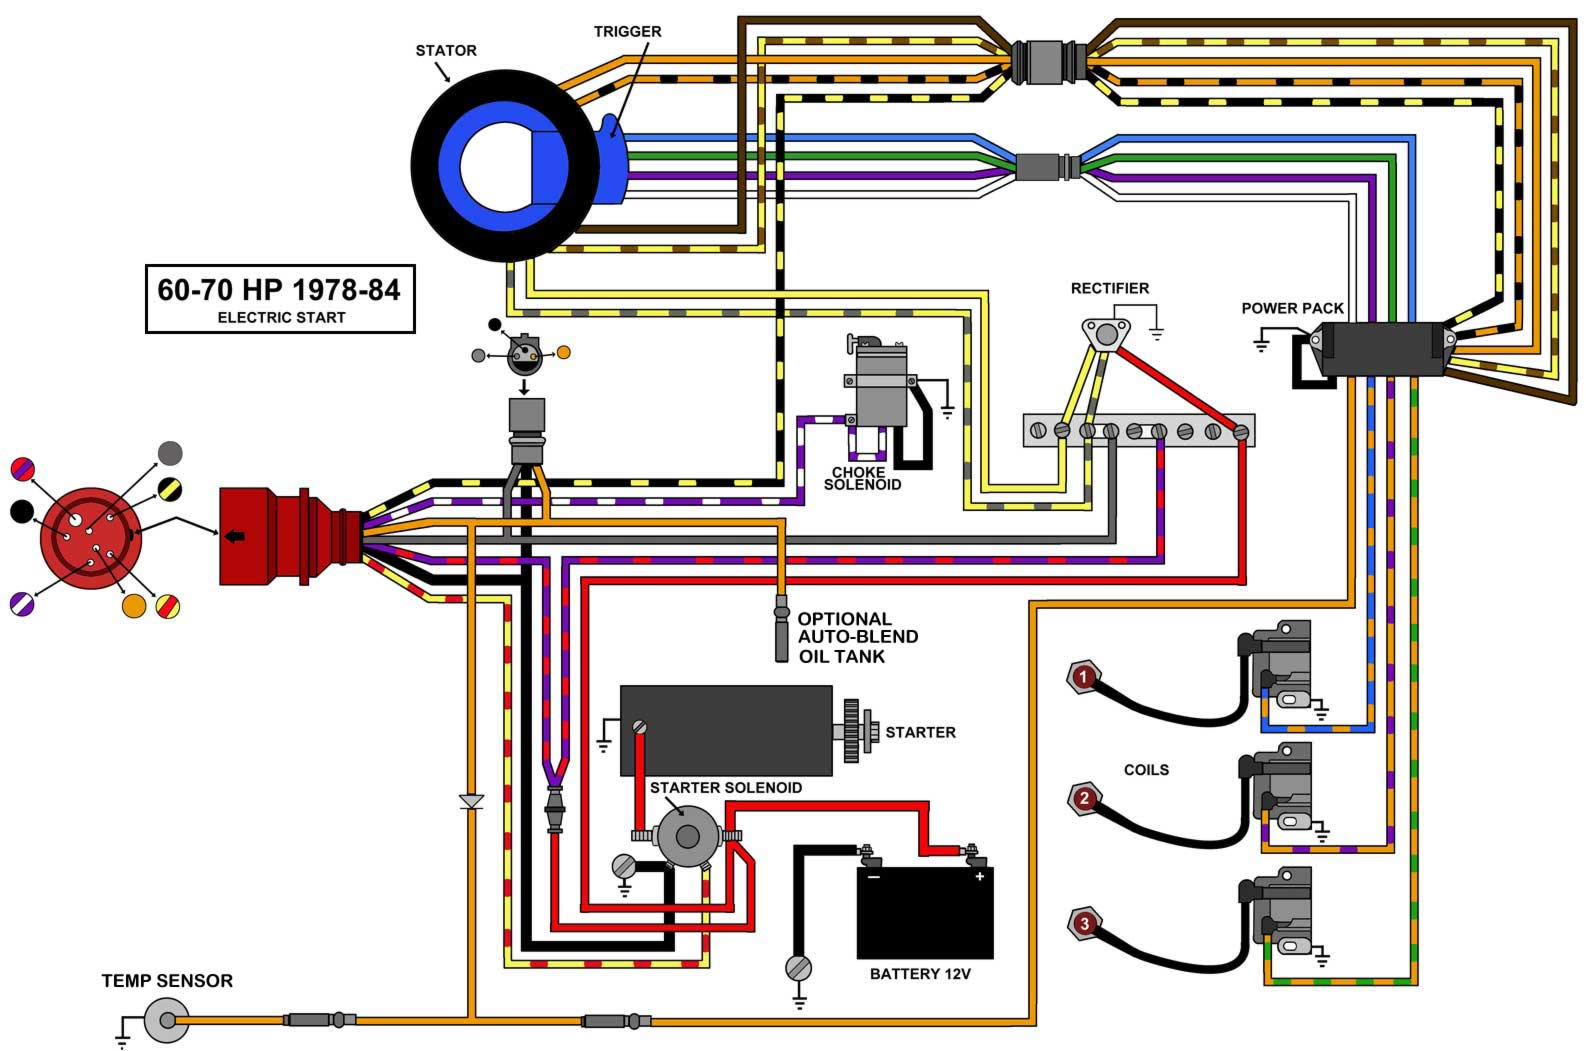 78 84_3 CYL_EL wiring tach from johnson controls page 1 iboats boating forums 70 HP Evinrude Schematic at aneh.co